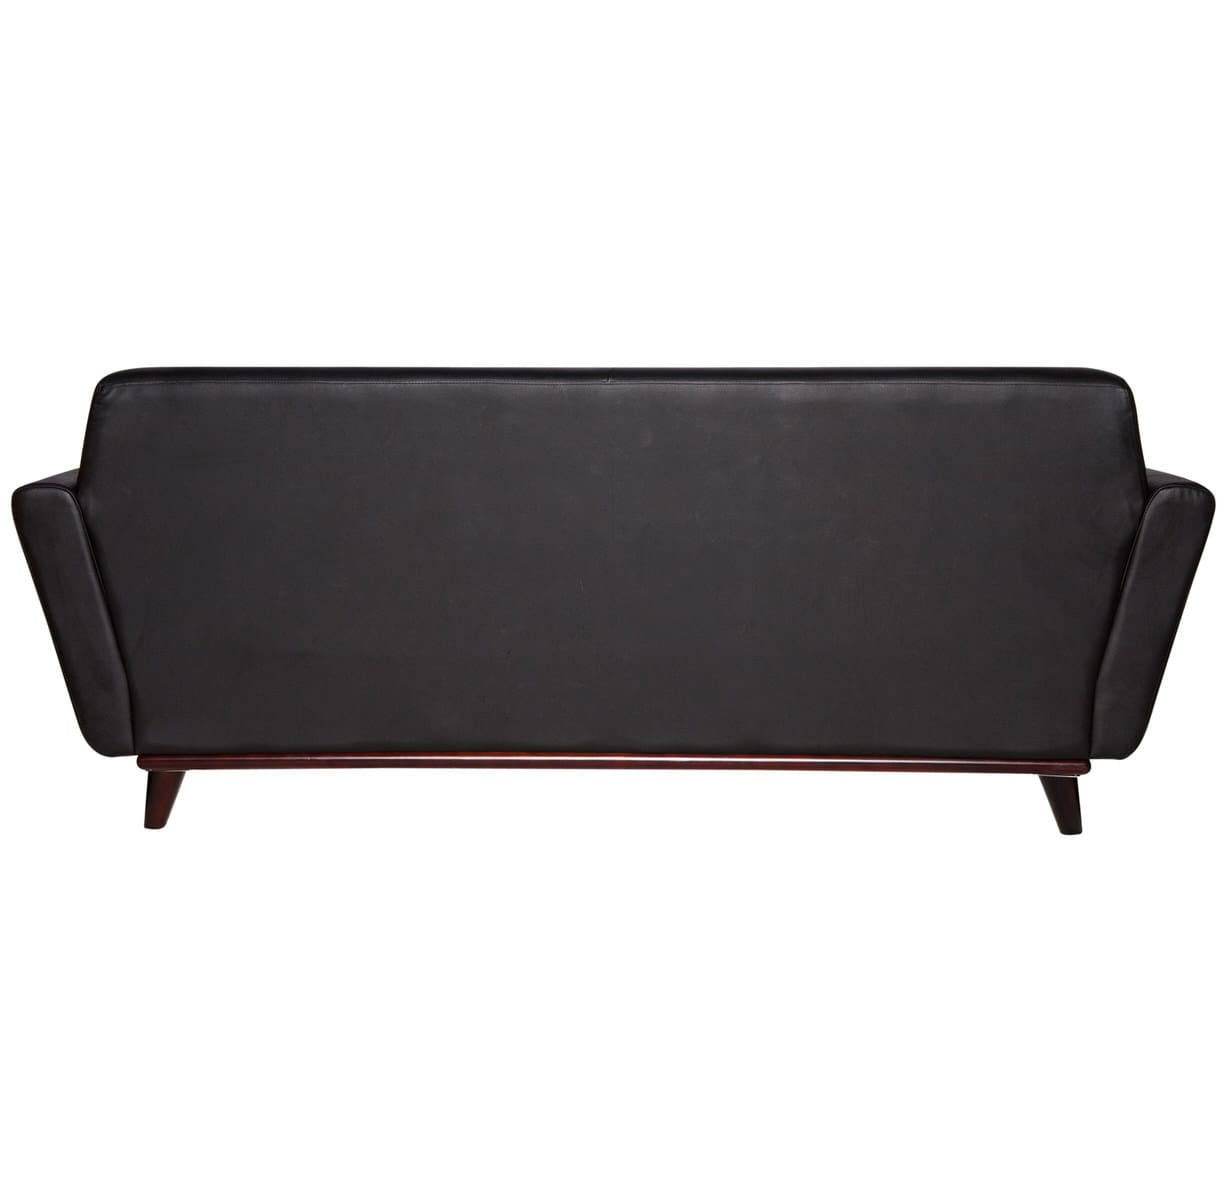 Luray Modern Tufted Sofa with Cherry Oak Base in Black Leather by LeisureMod